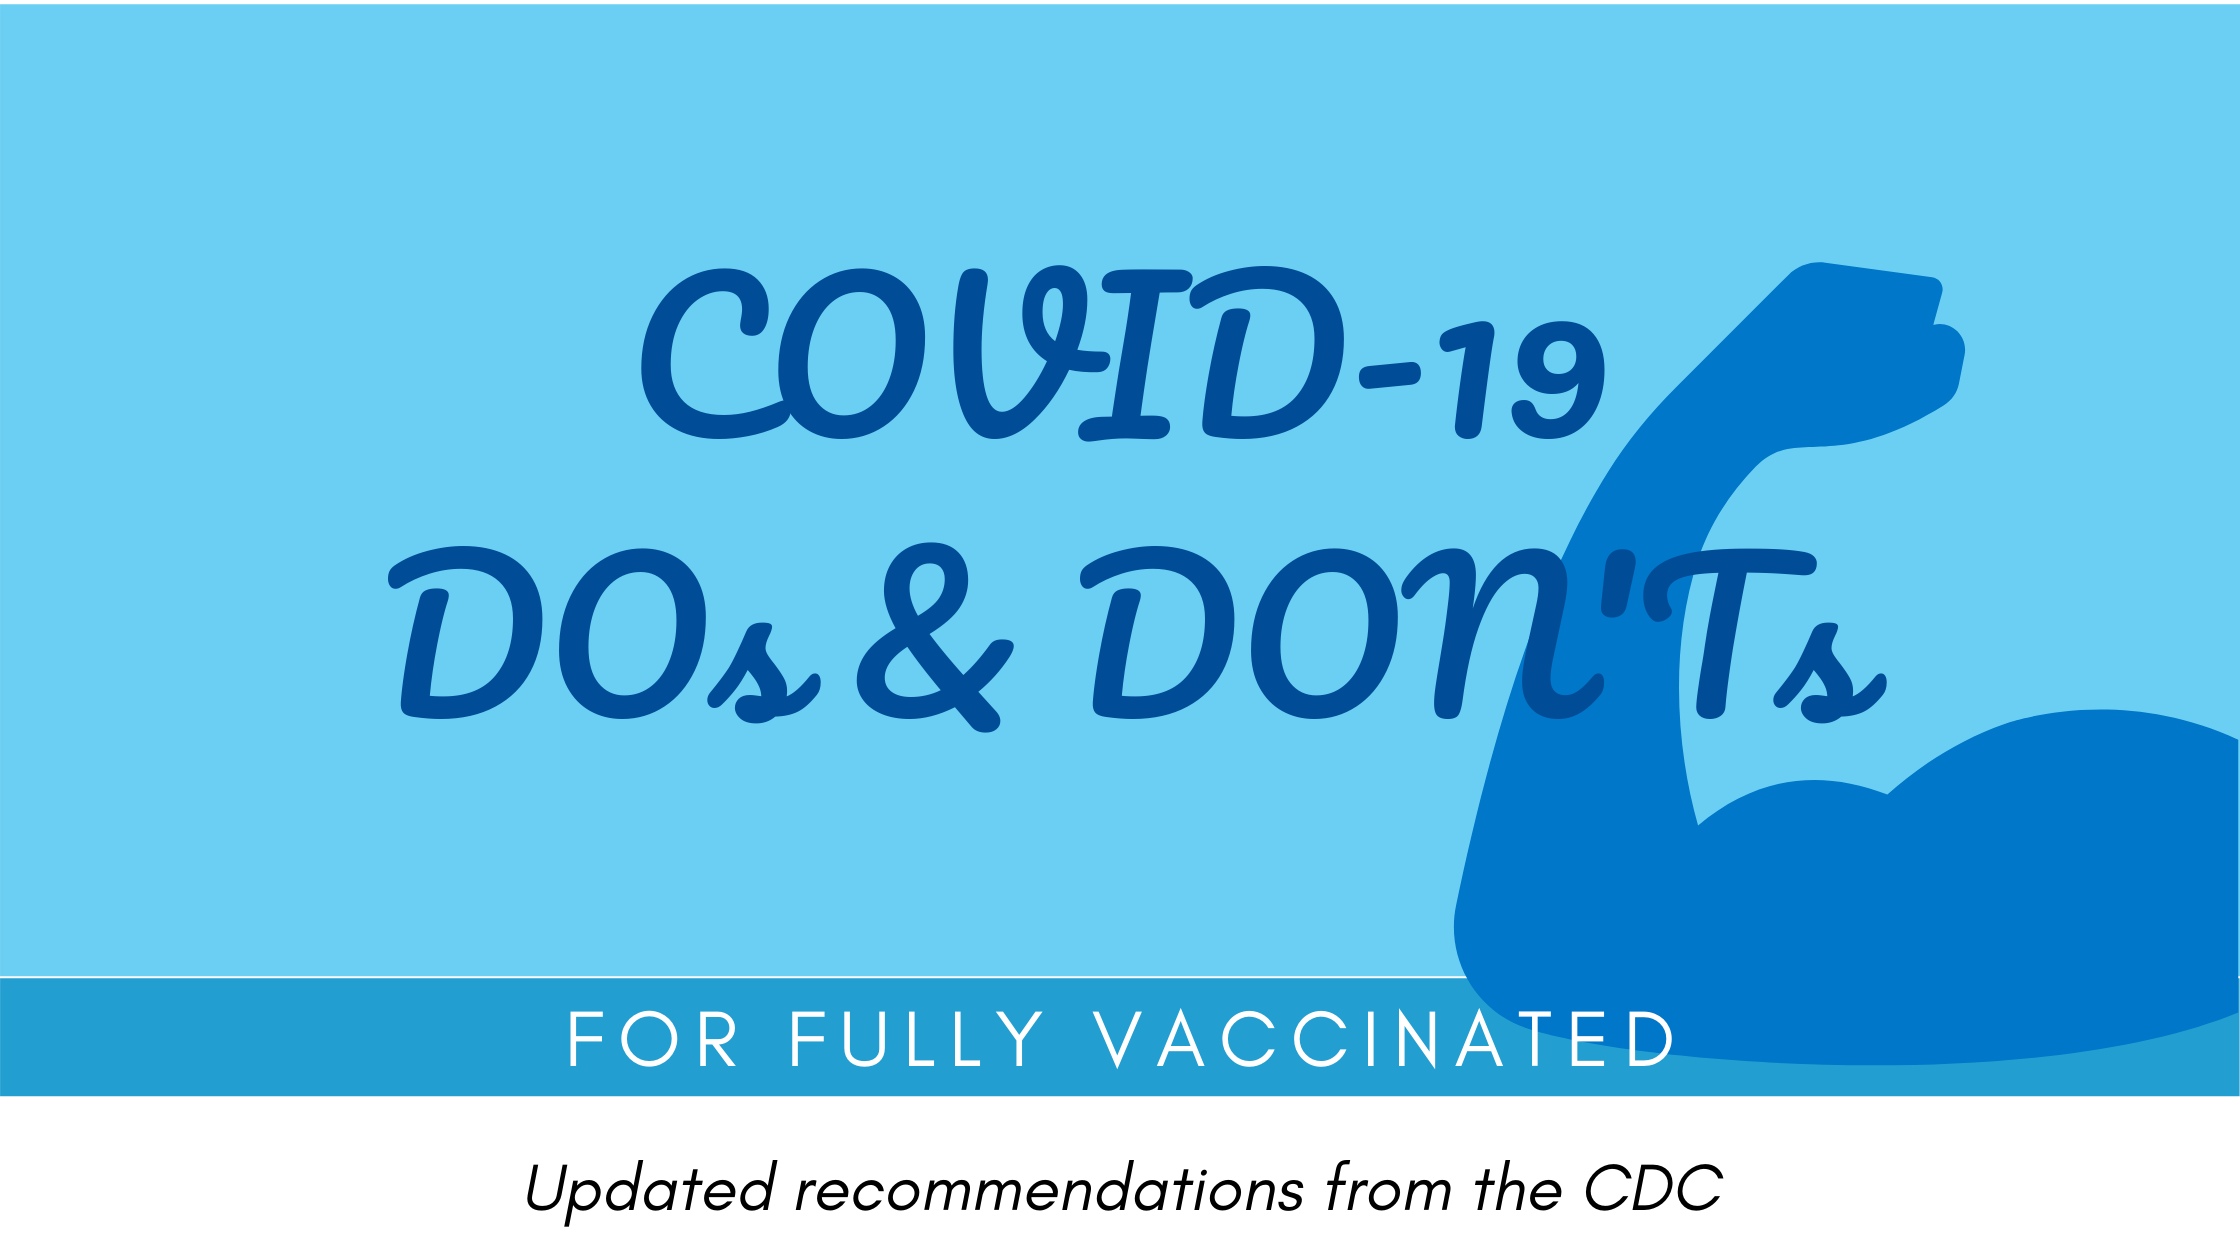 COVID-19 DOs and DON'Ts for Fully Vaccinated per July 28 CDC Update